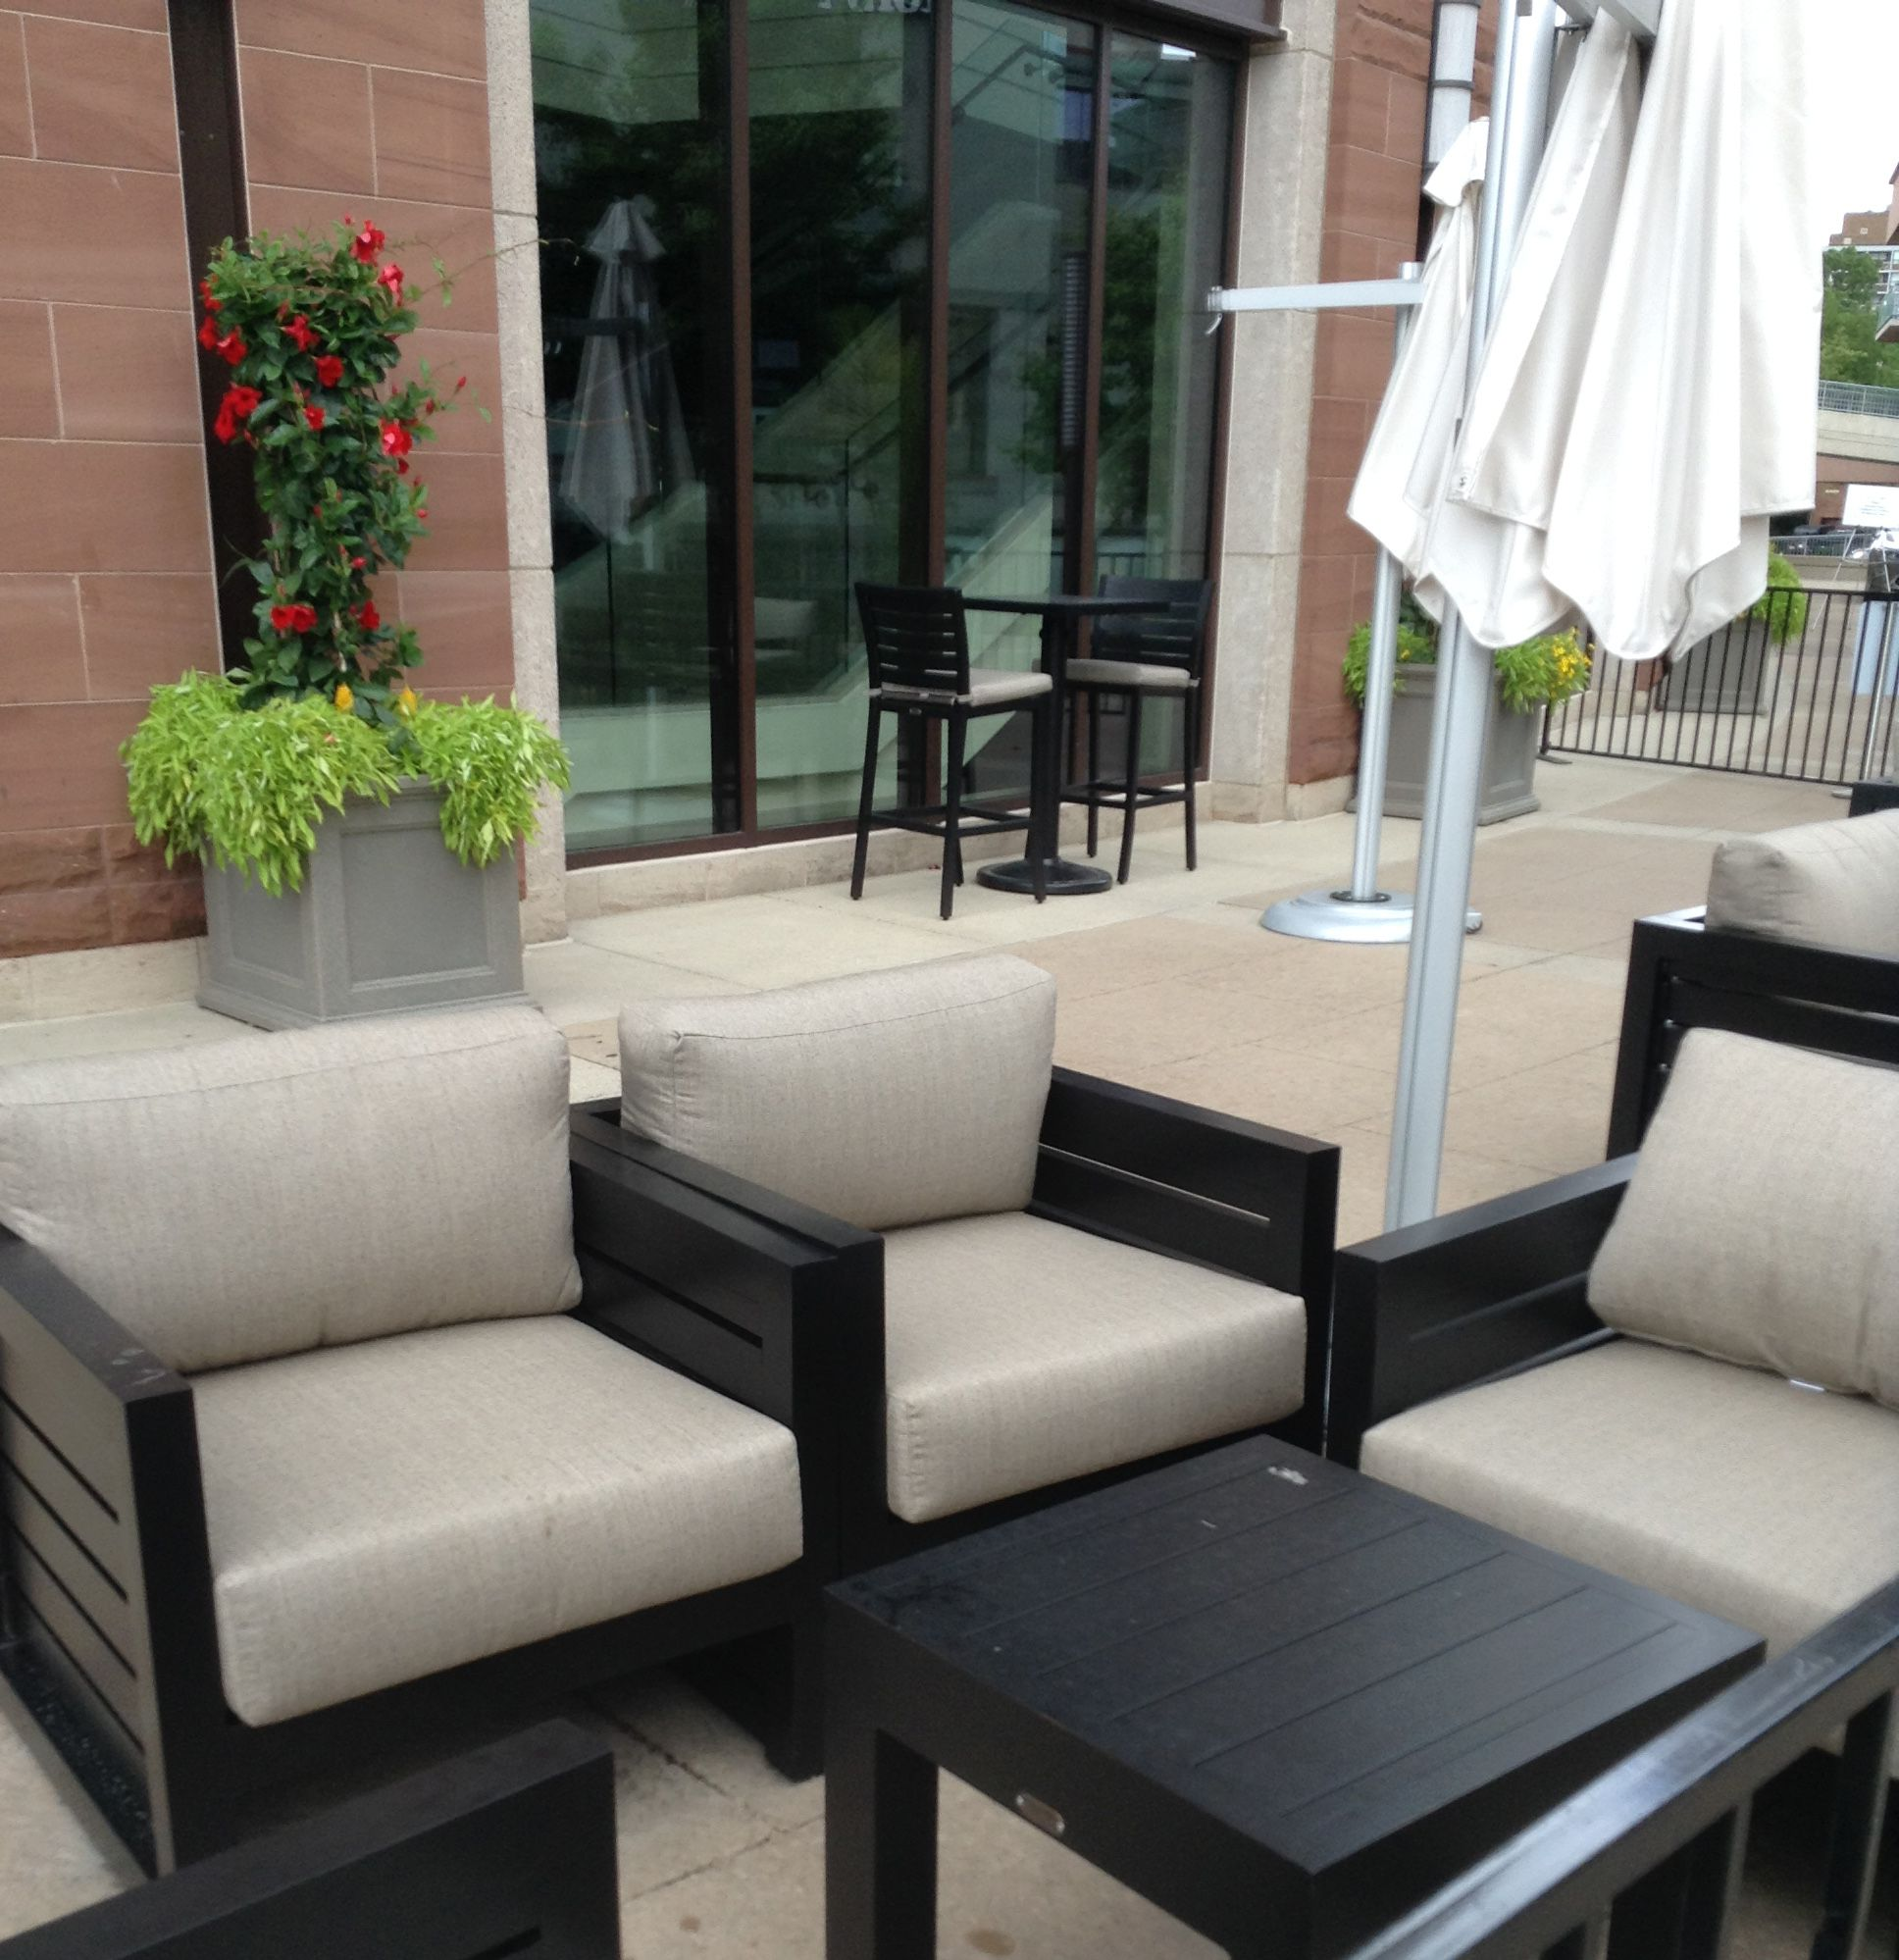 Furniture Stores Brampton Ontario Cafe Outside The Rose Theatre In Brampton Ontario Patio